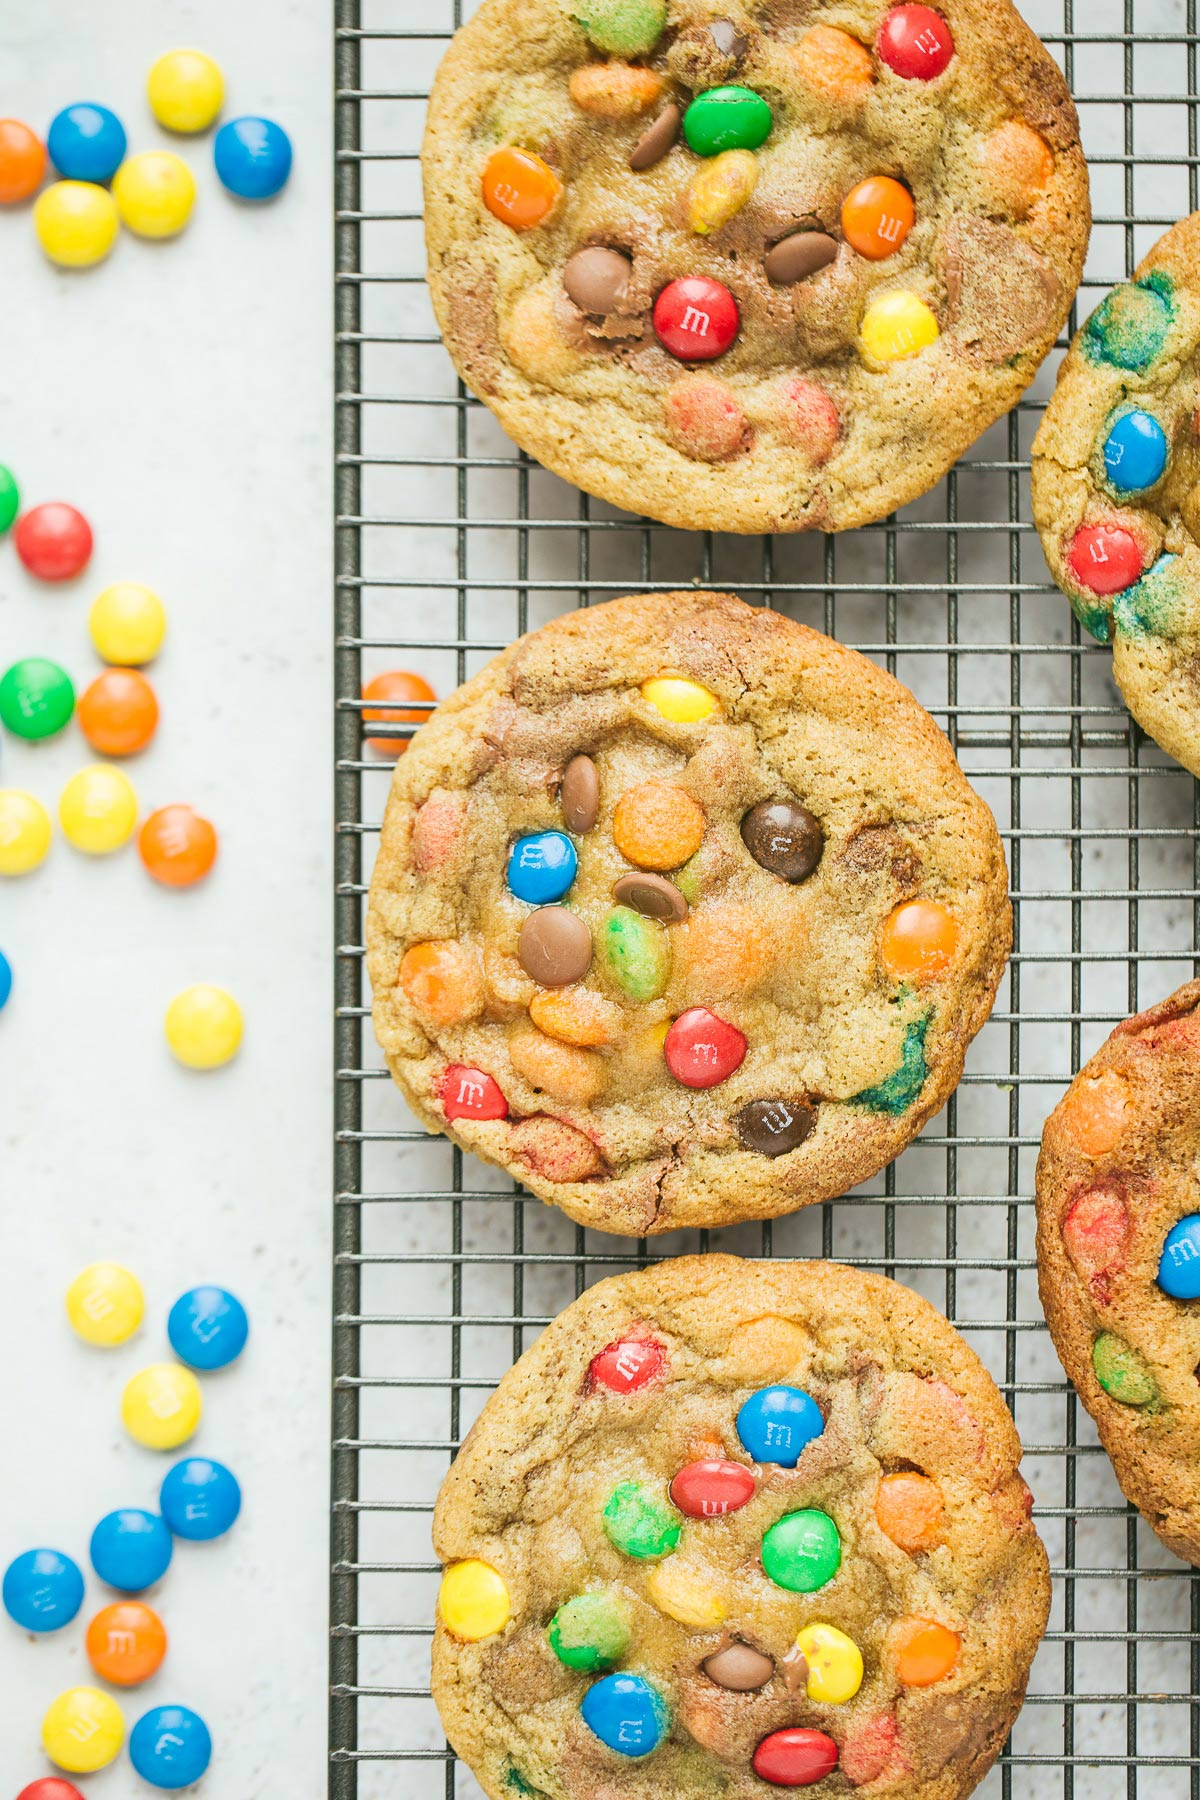 five m&m cookies on a wire rack with m&m candies on the side.